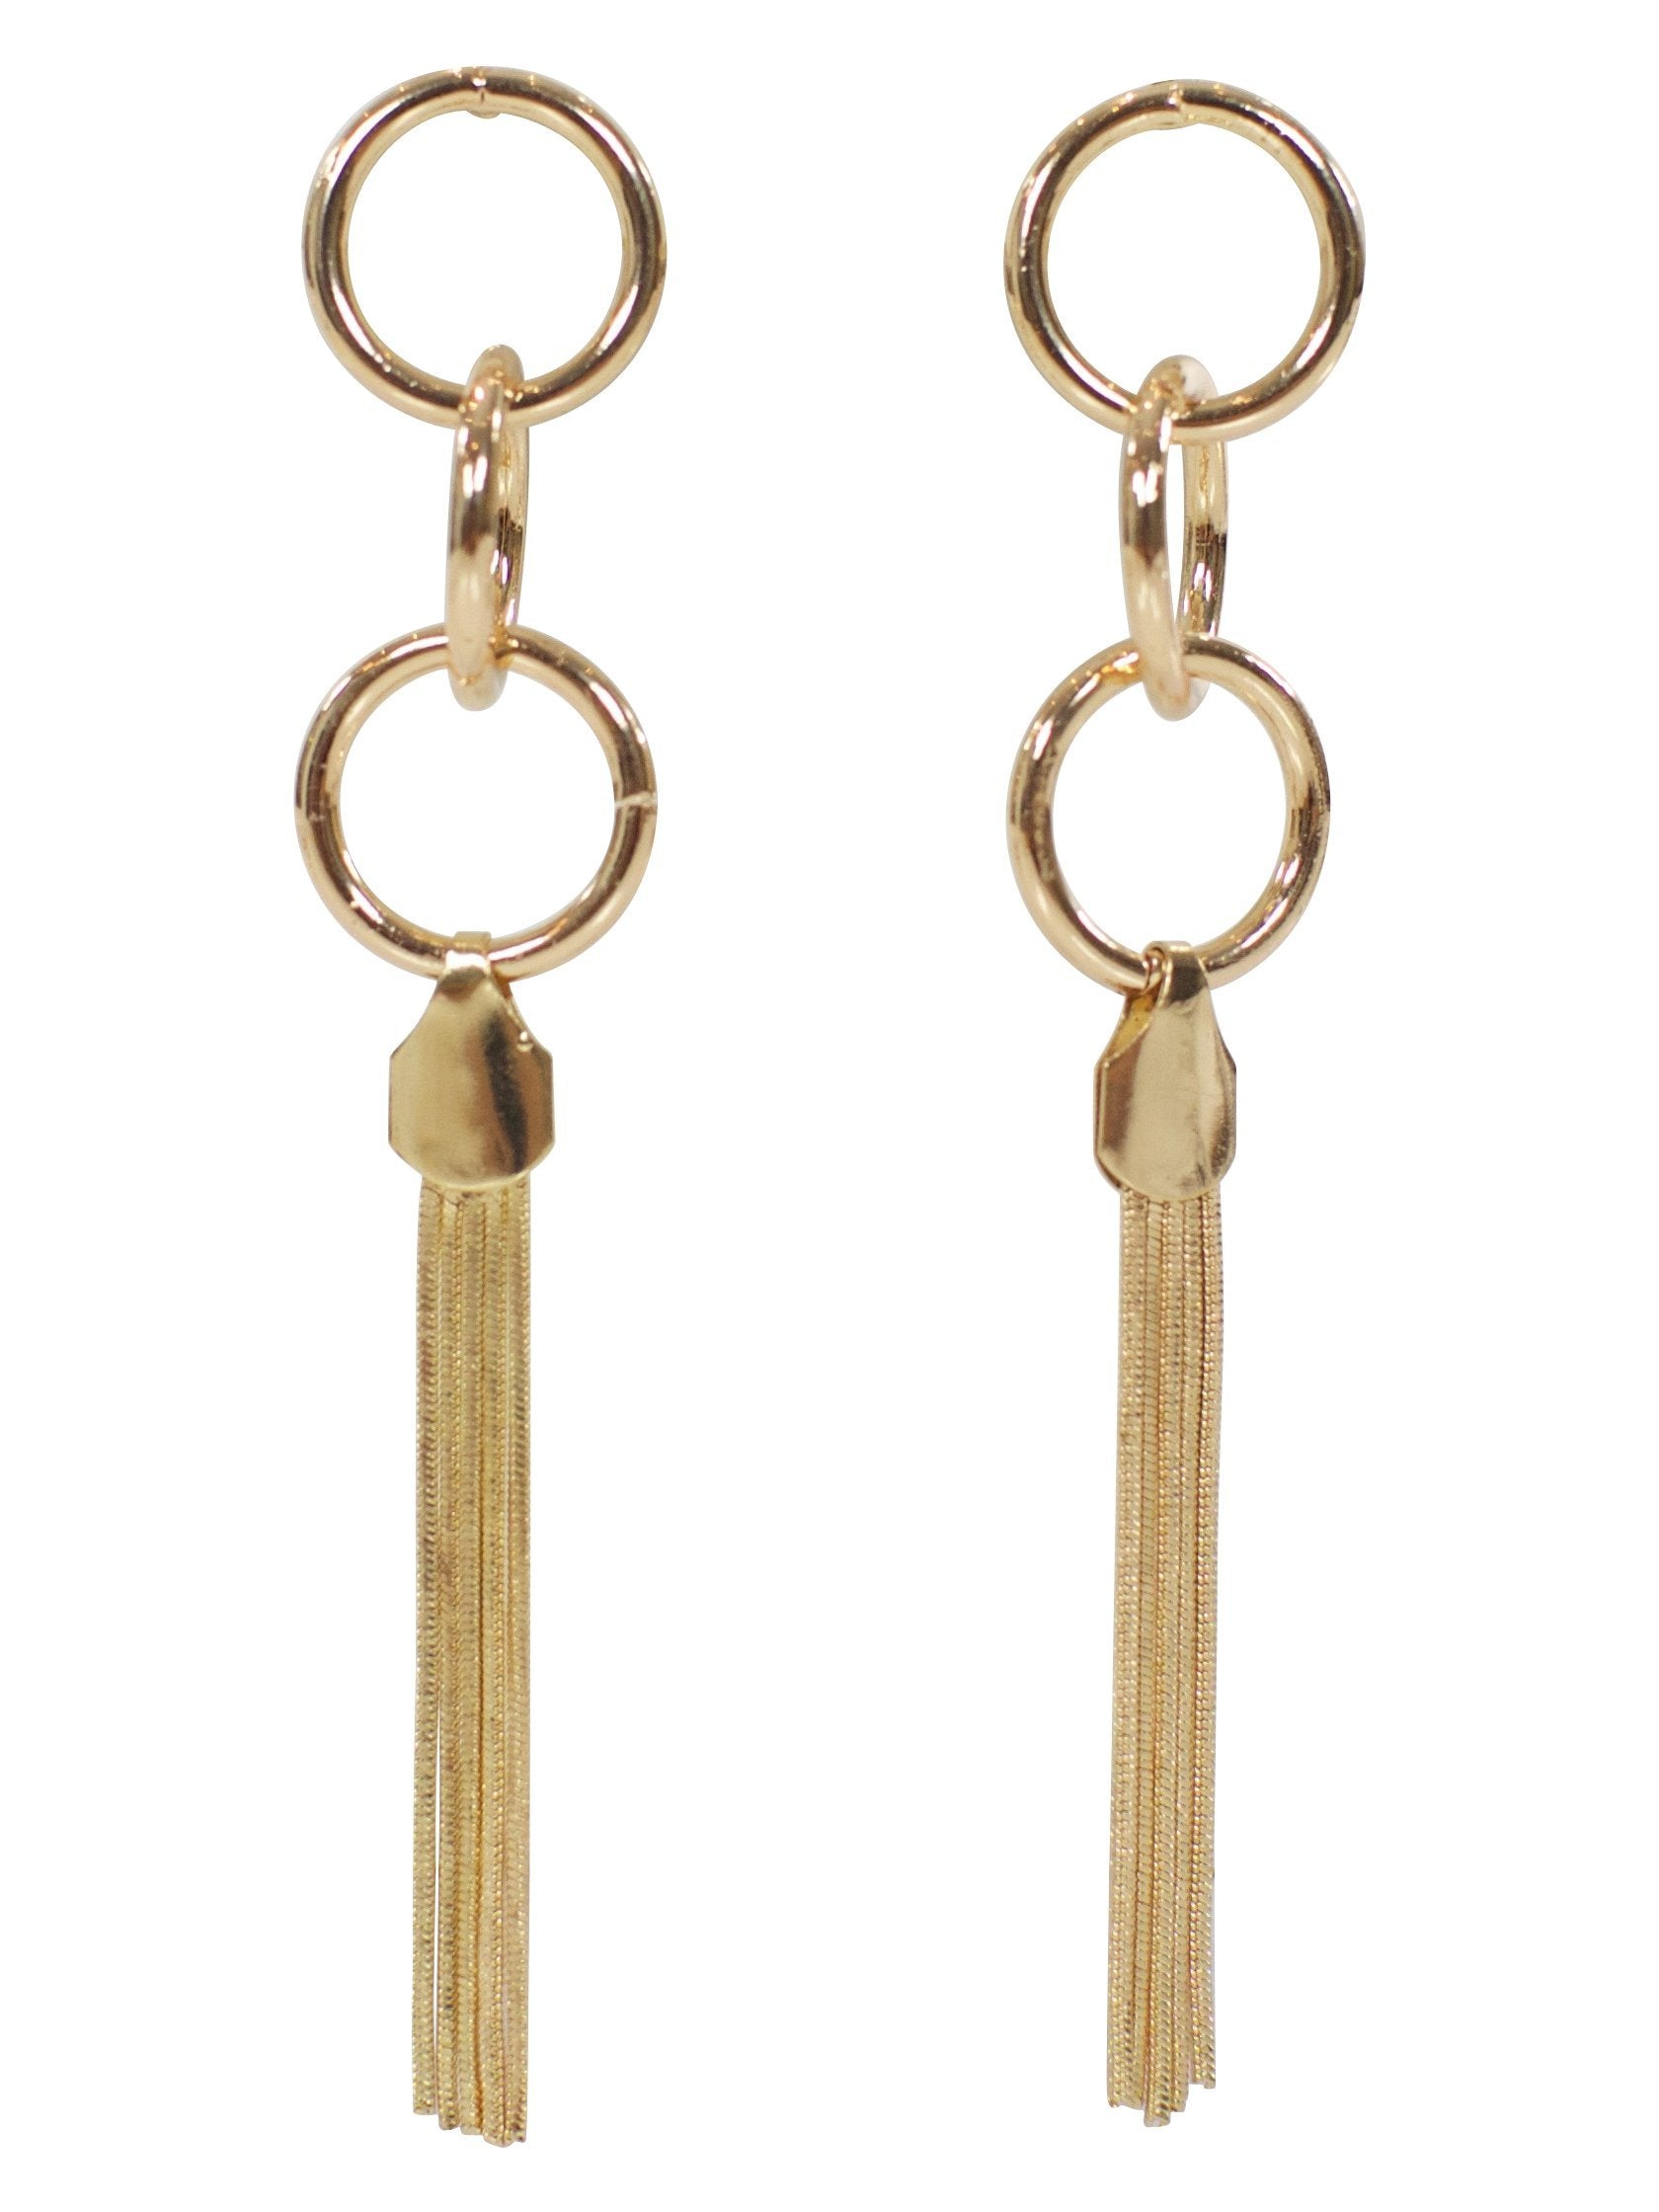 Women outfit in a earrings rental from FashionPass called Carrie Dangle Earring